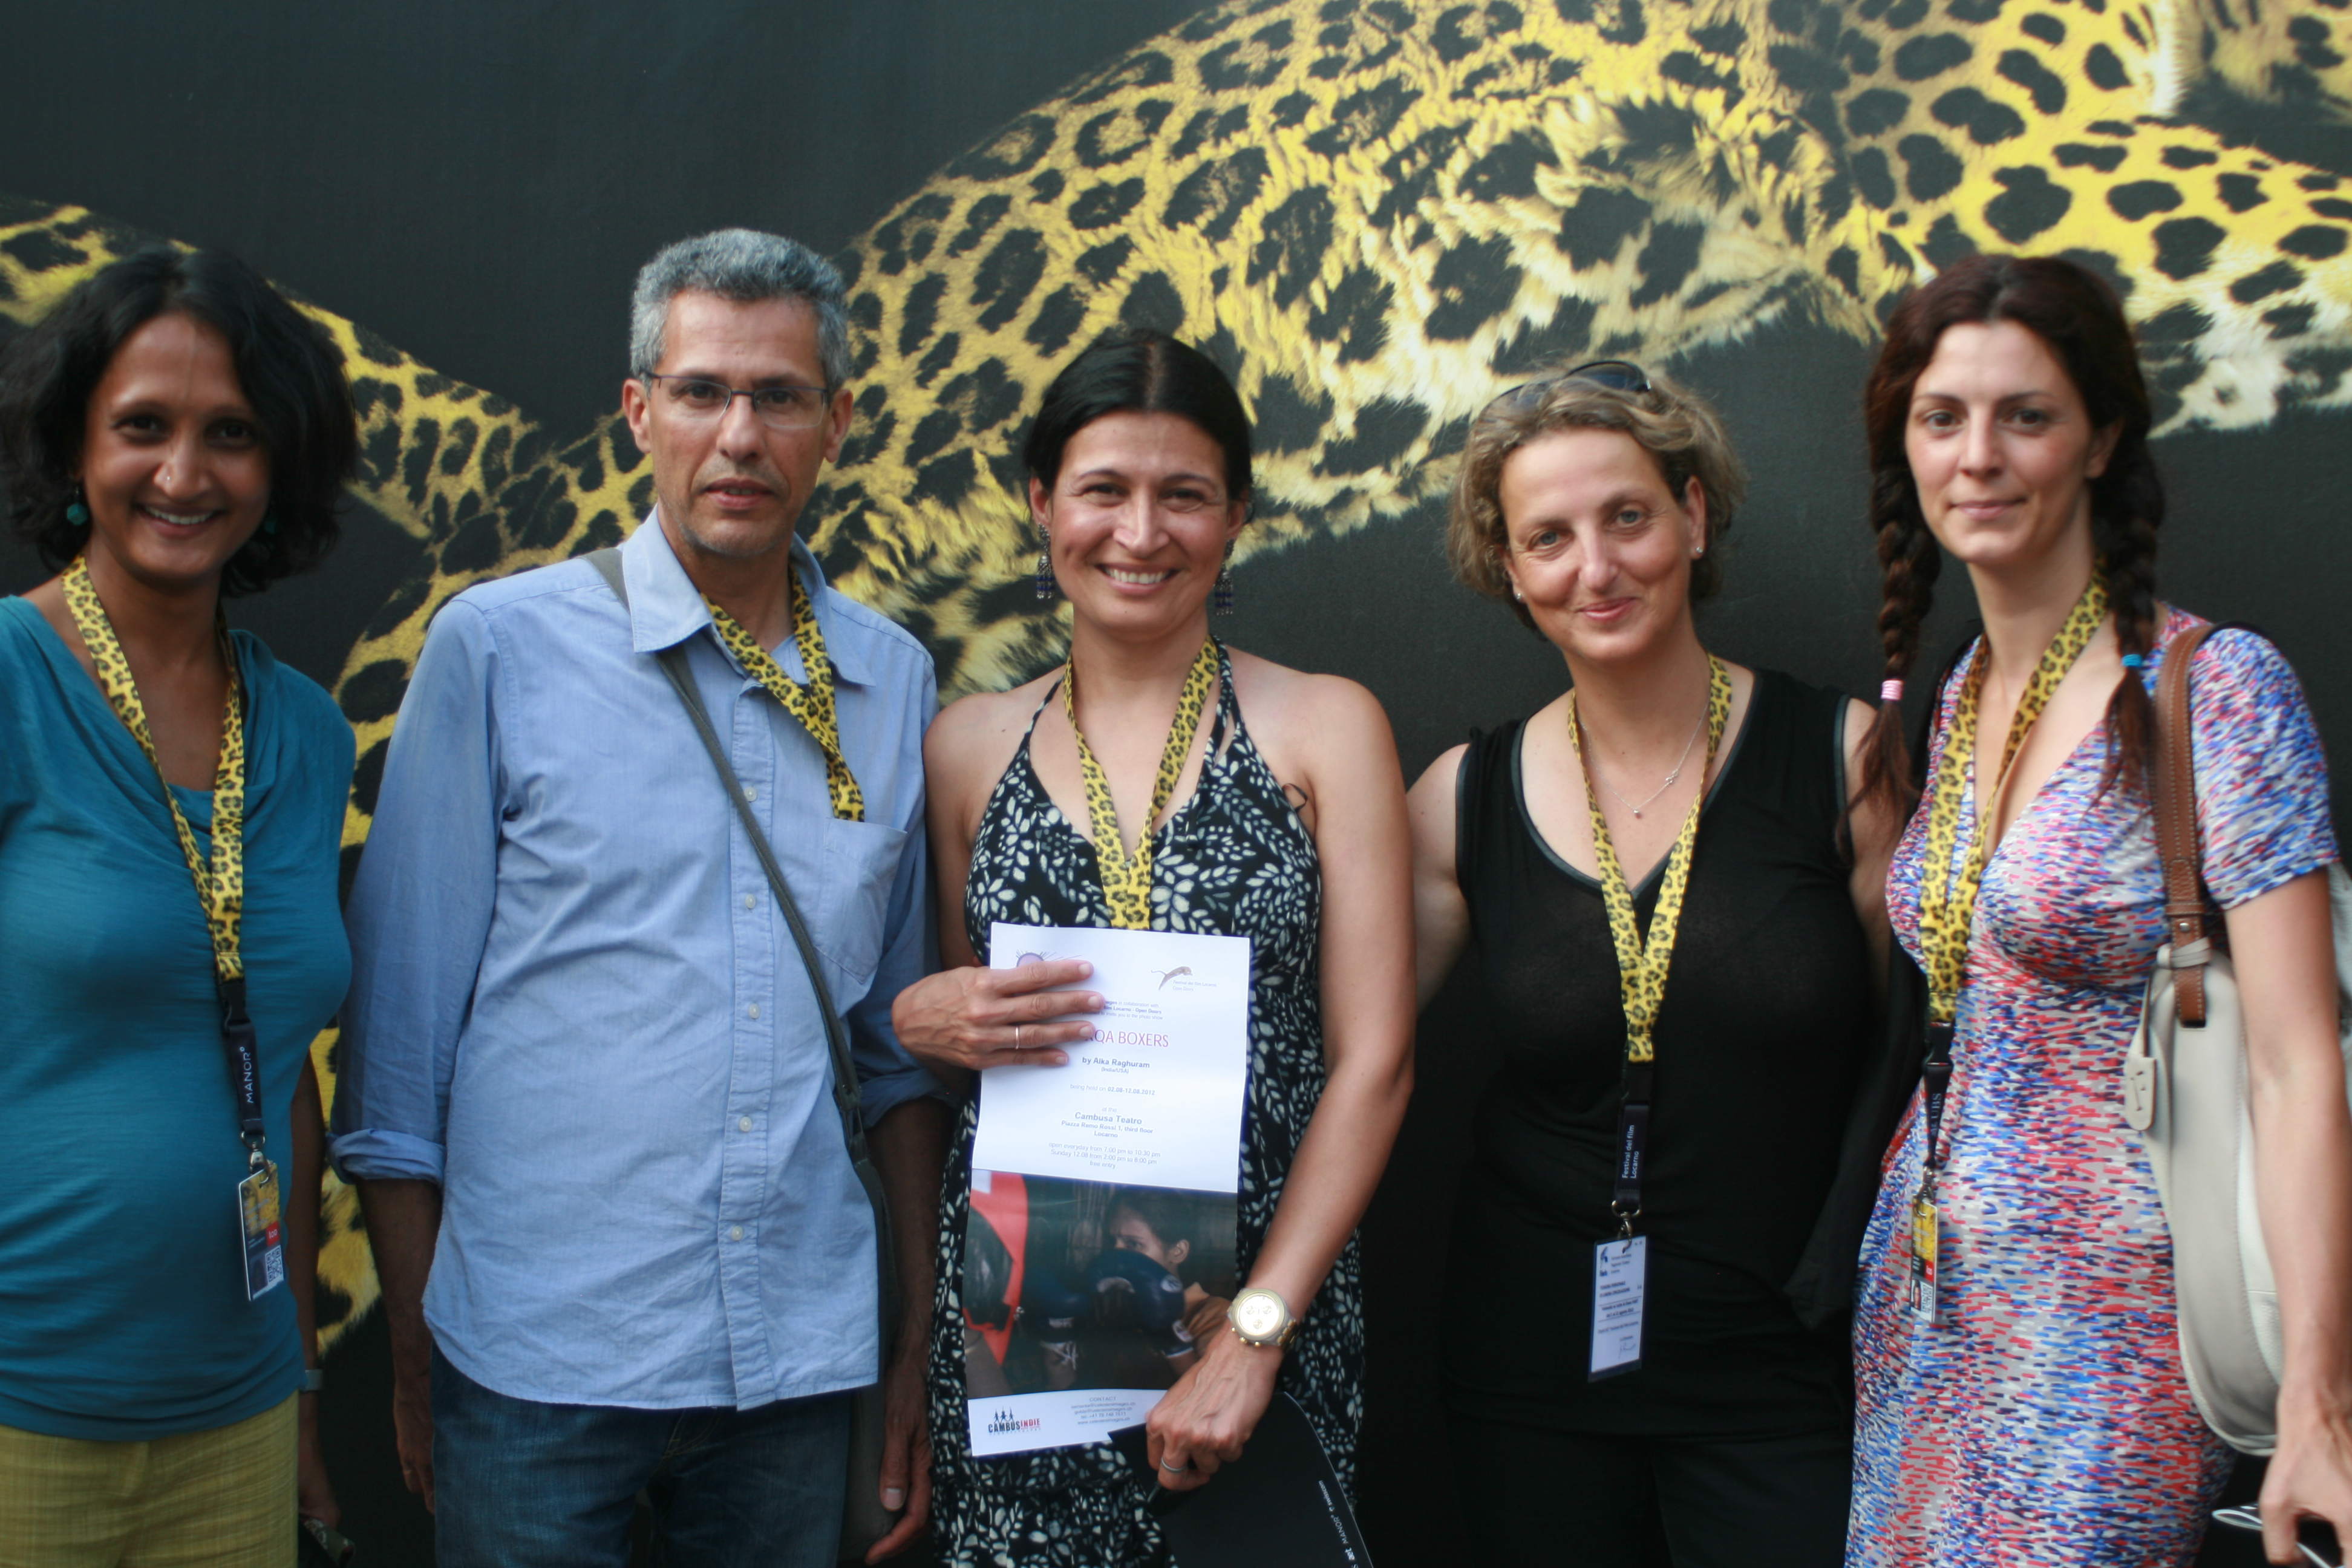 24 Images, Alka, Celeste Image at Locarno.